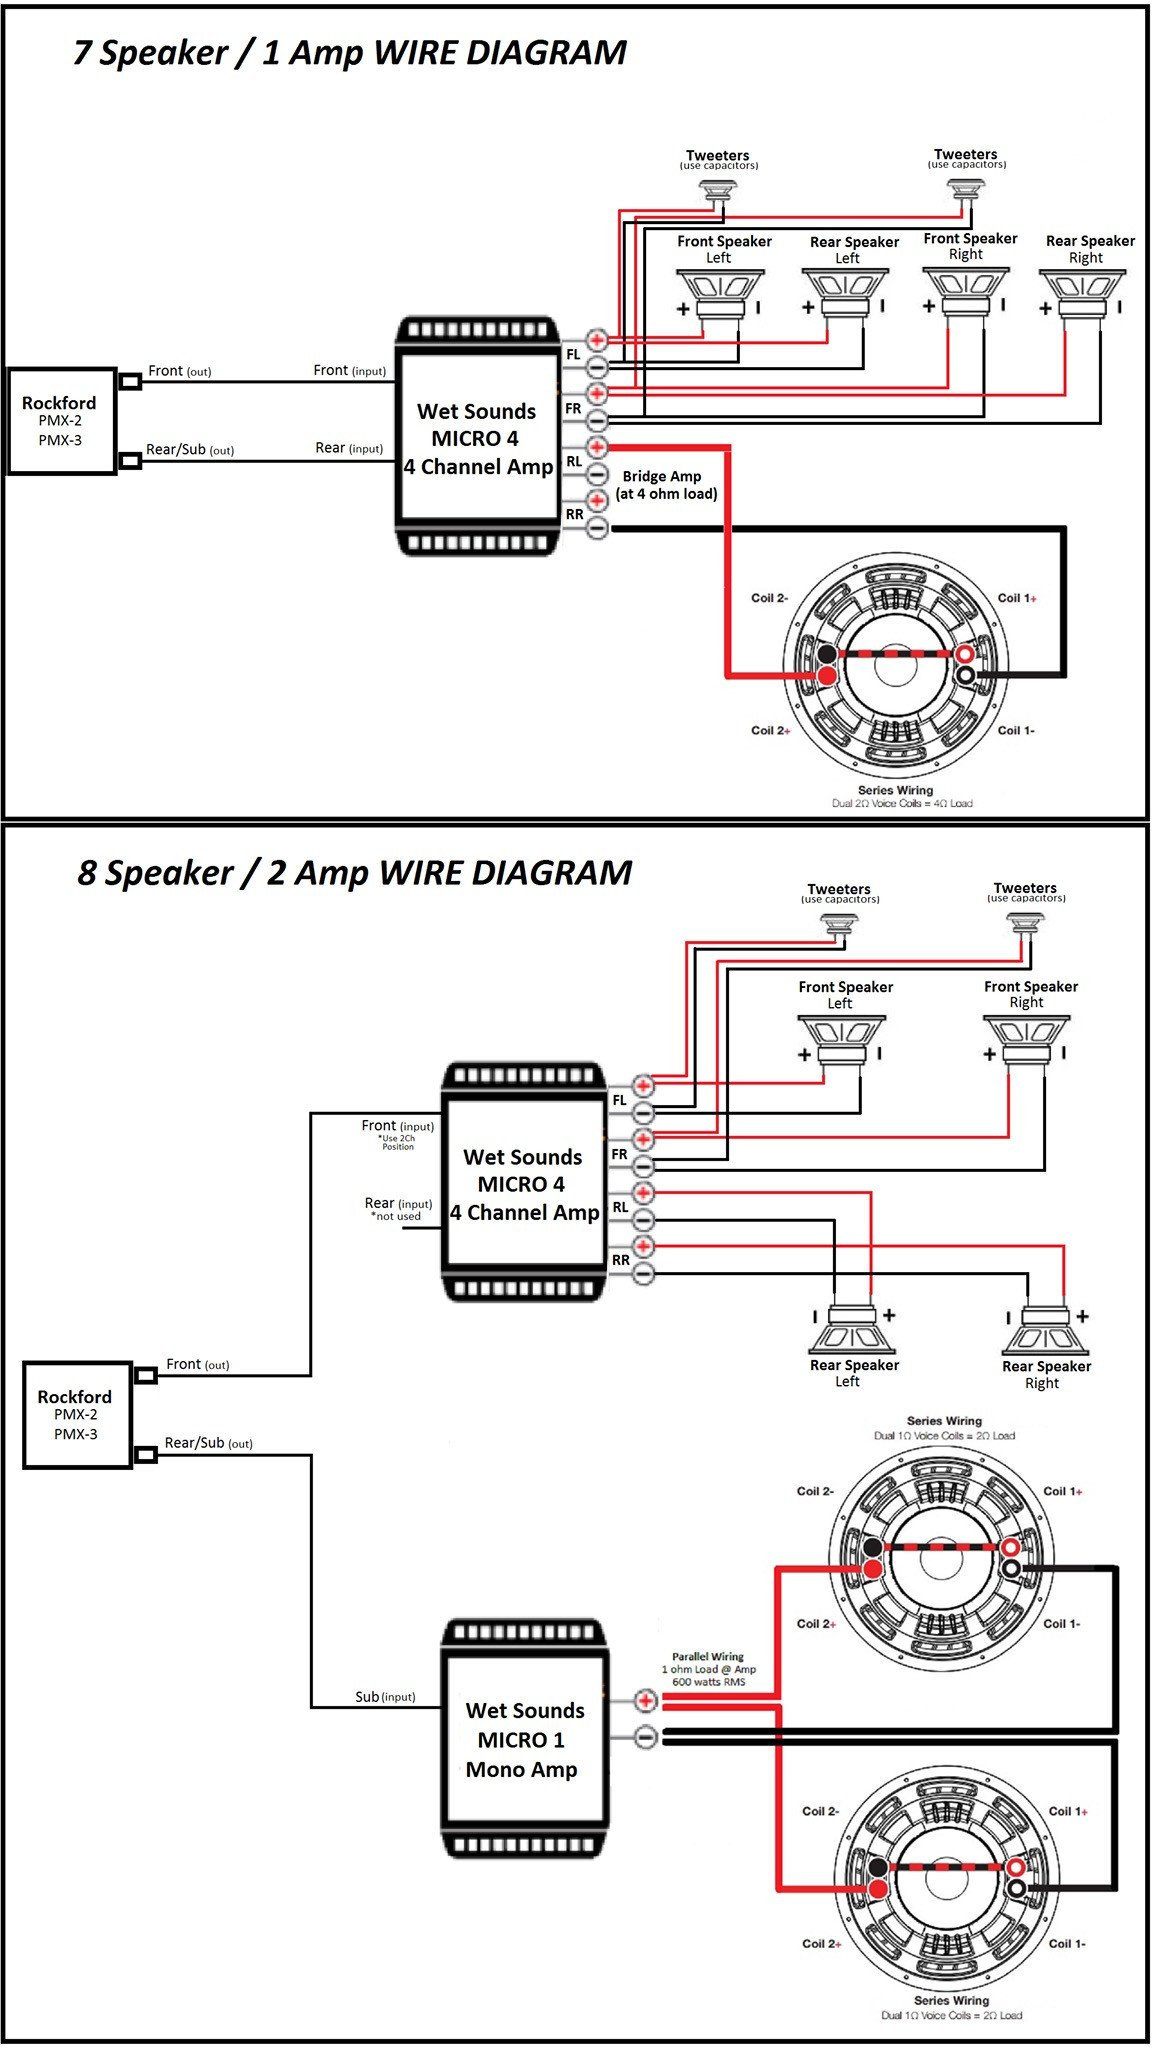 Can Am X3 8 Speaker System / 2 Amps  Speakers Amps Wiring Diagram on fender deluxe wiring diagram, amp ground diagram, dc to ac inverter wiring diagram, fender vintage wiring diagram, amp switch diagram, amp rims, fender amplifier wiring diagram, amp speaker wire, fender champ wiring diagram,